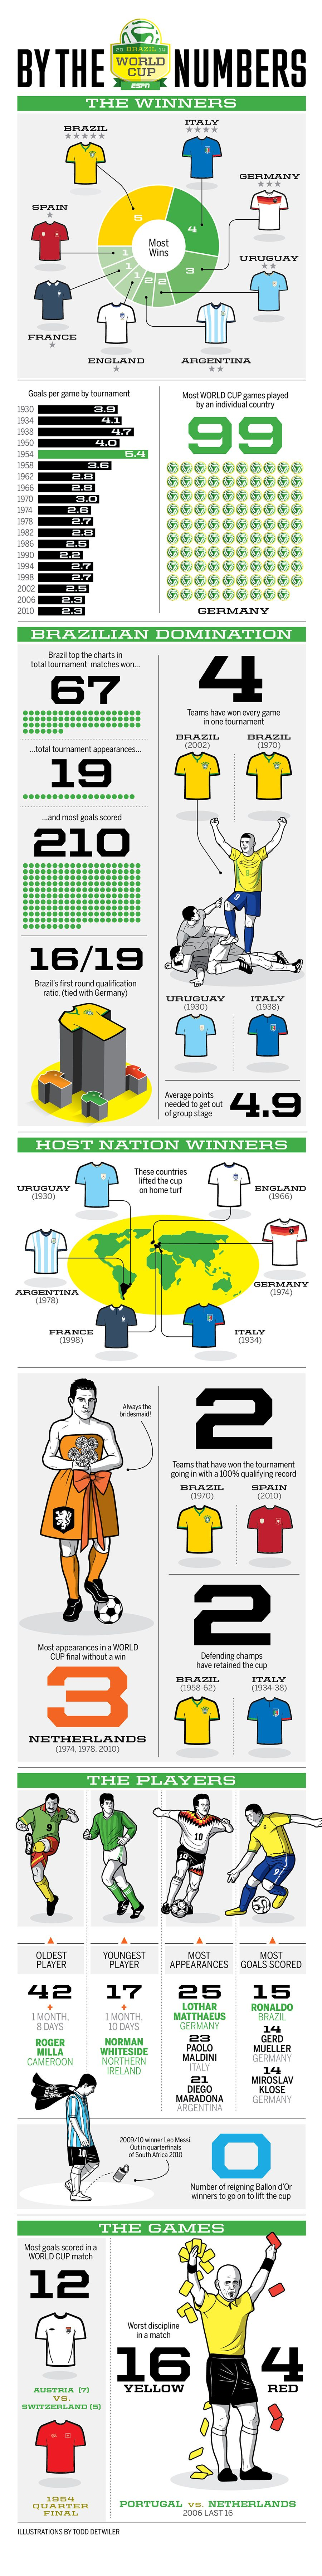 By the Numbers World Cup Brazil 2014